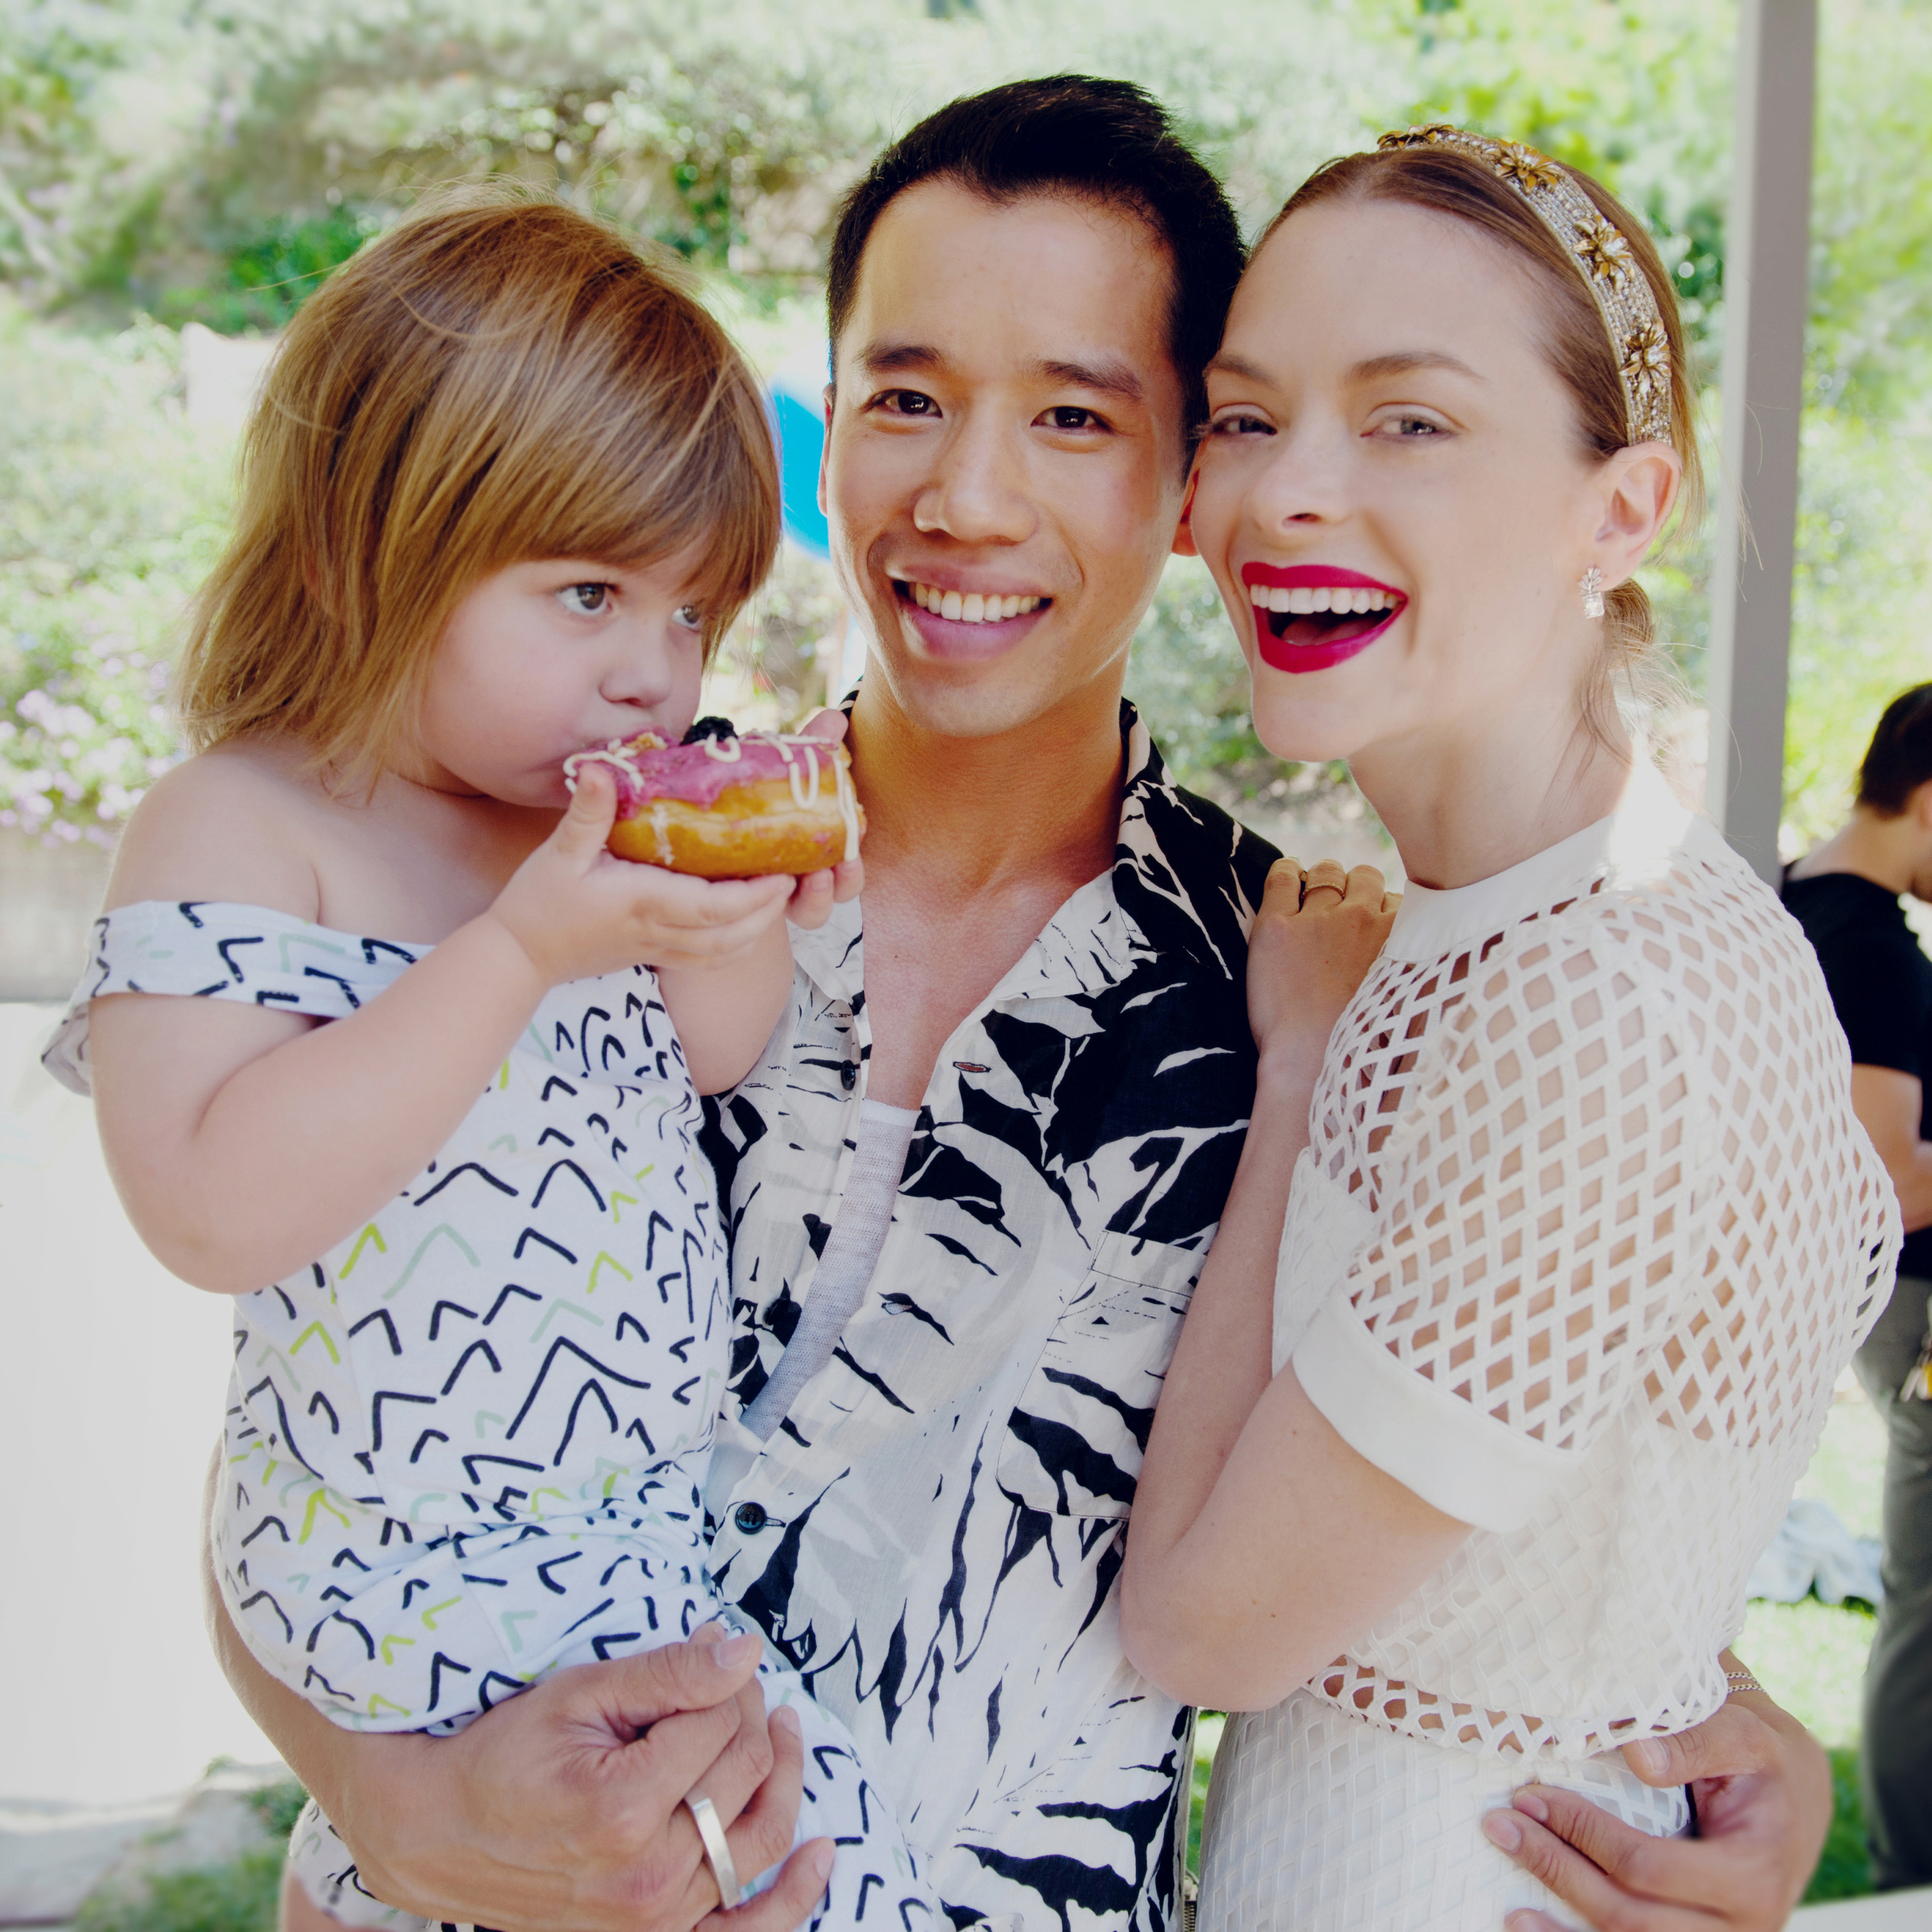 Jared Eng with actress, Jaime King and her son, James Knight.